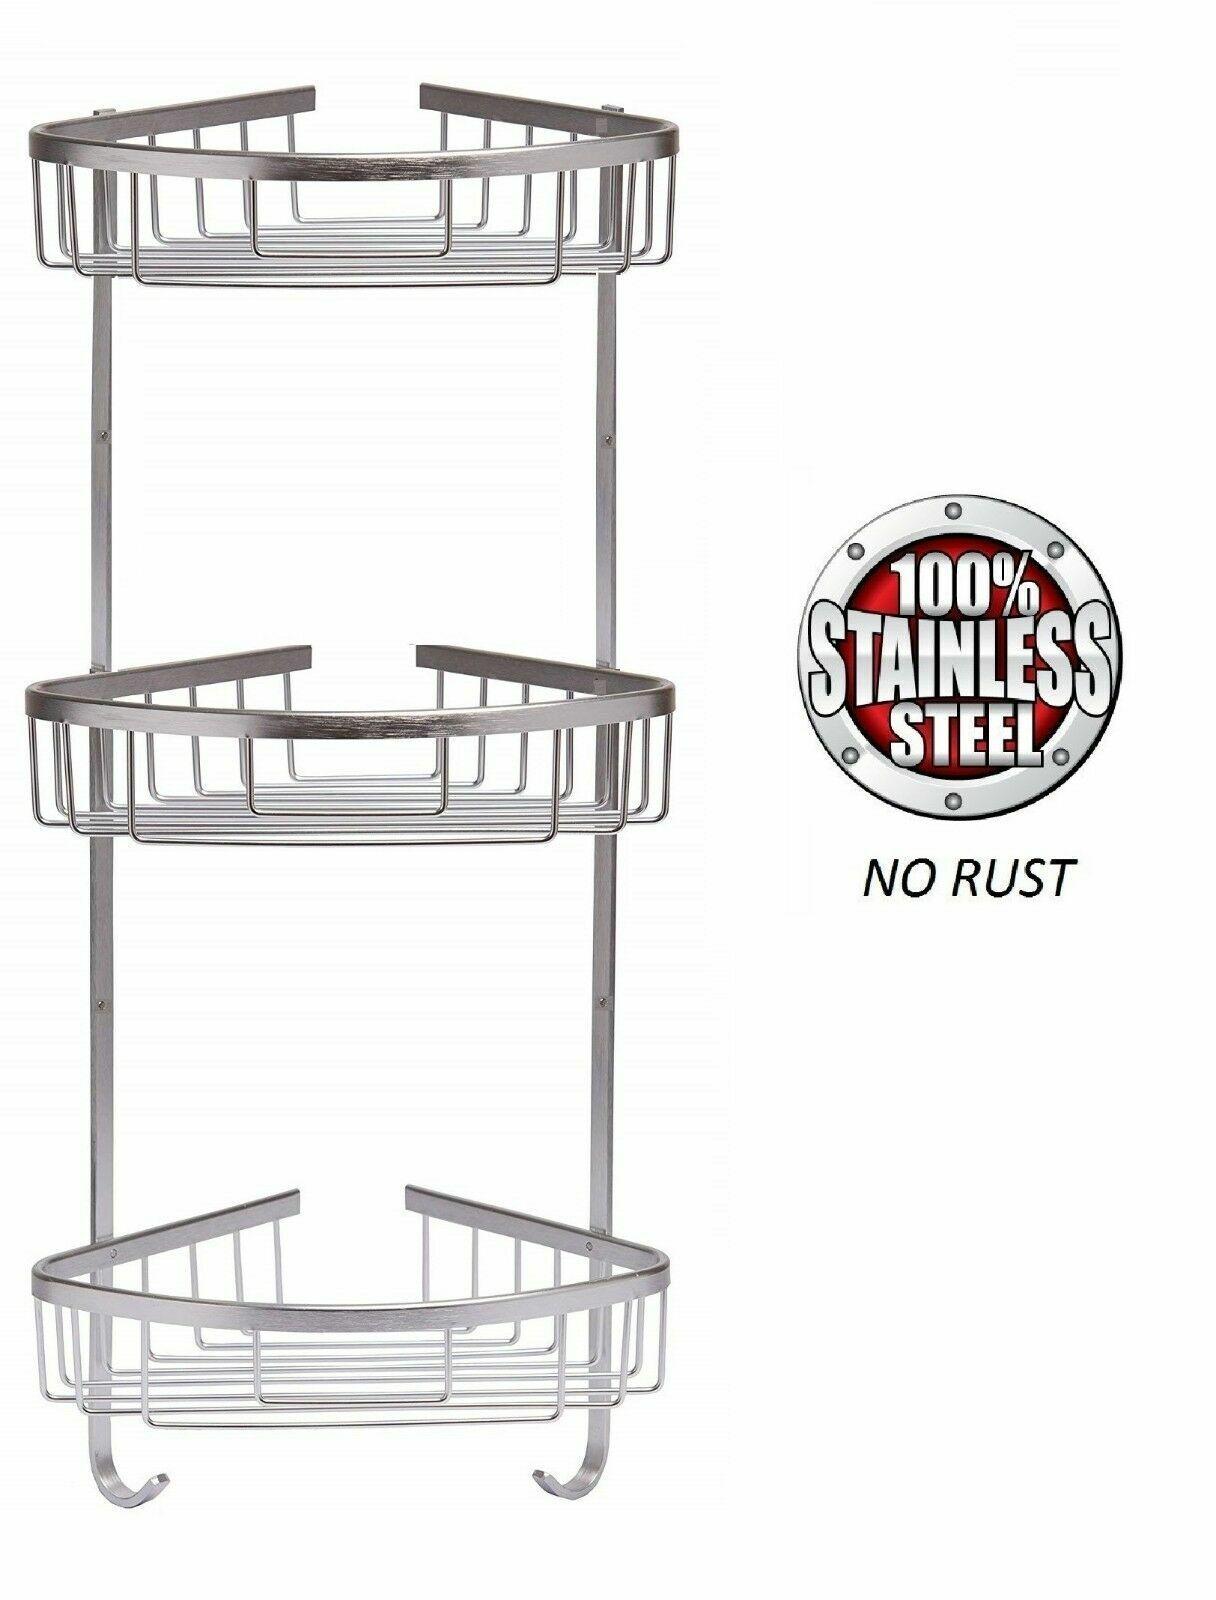 3 TIER STAINLESS STEEL